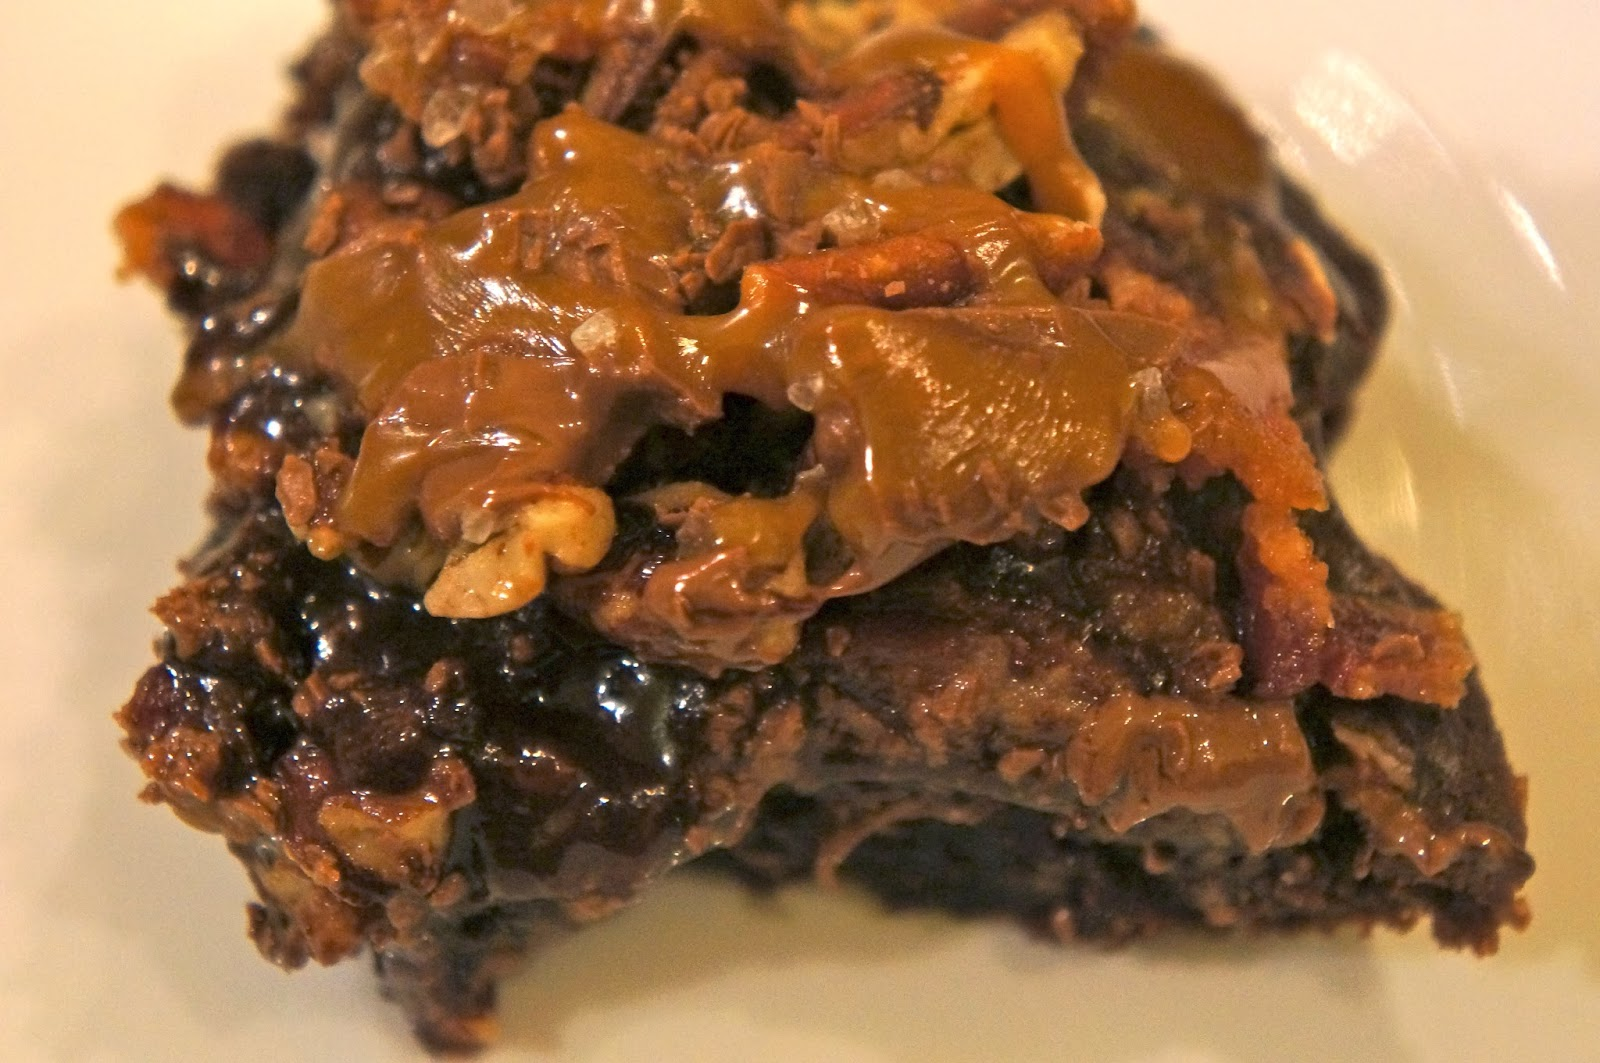 Brownies With Bourbon Caramel Frosting Recipes — Dishmaps